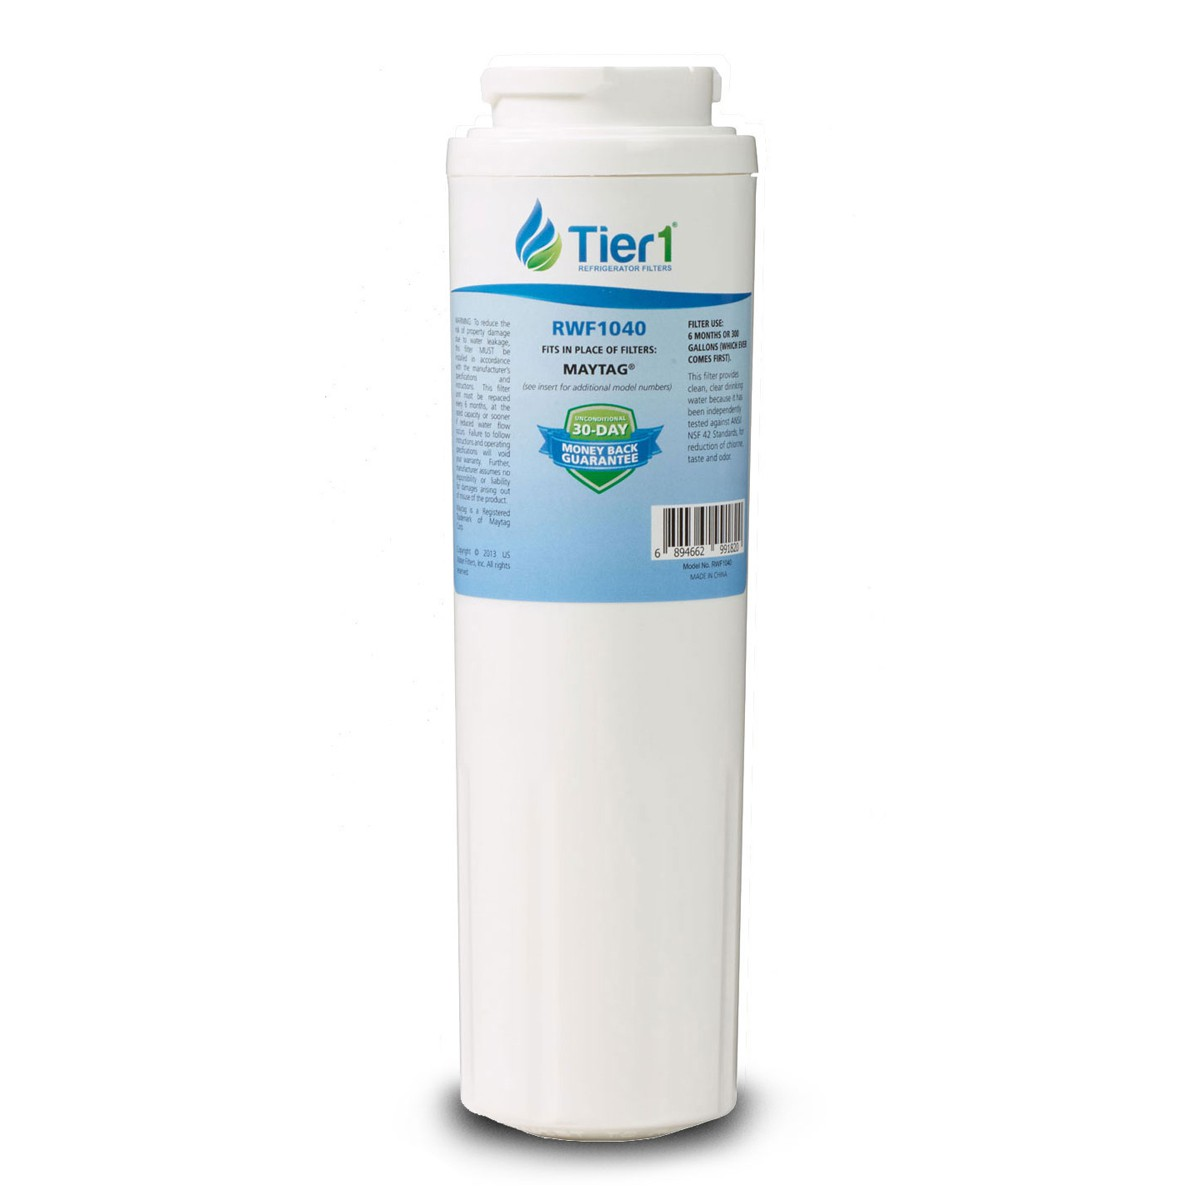 1033f6a6ba5 Maytag UKF8001 Comparable Refrigerator Water Filter Replacement By Tier1